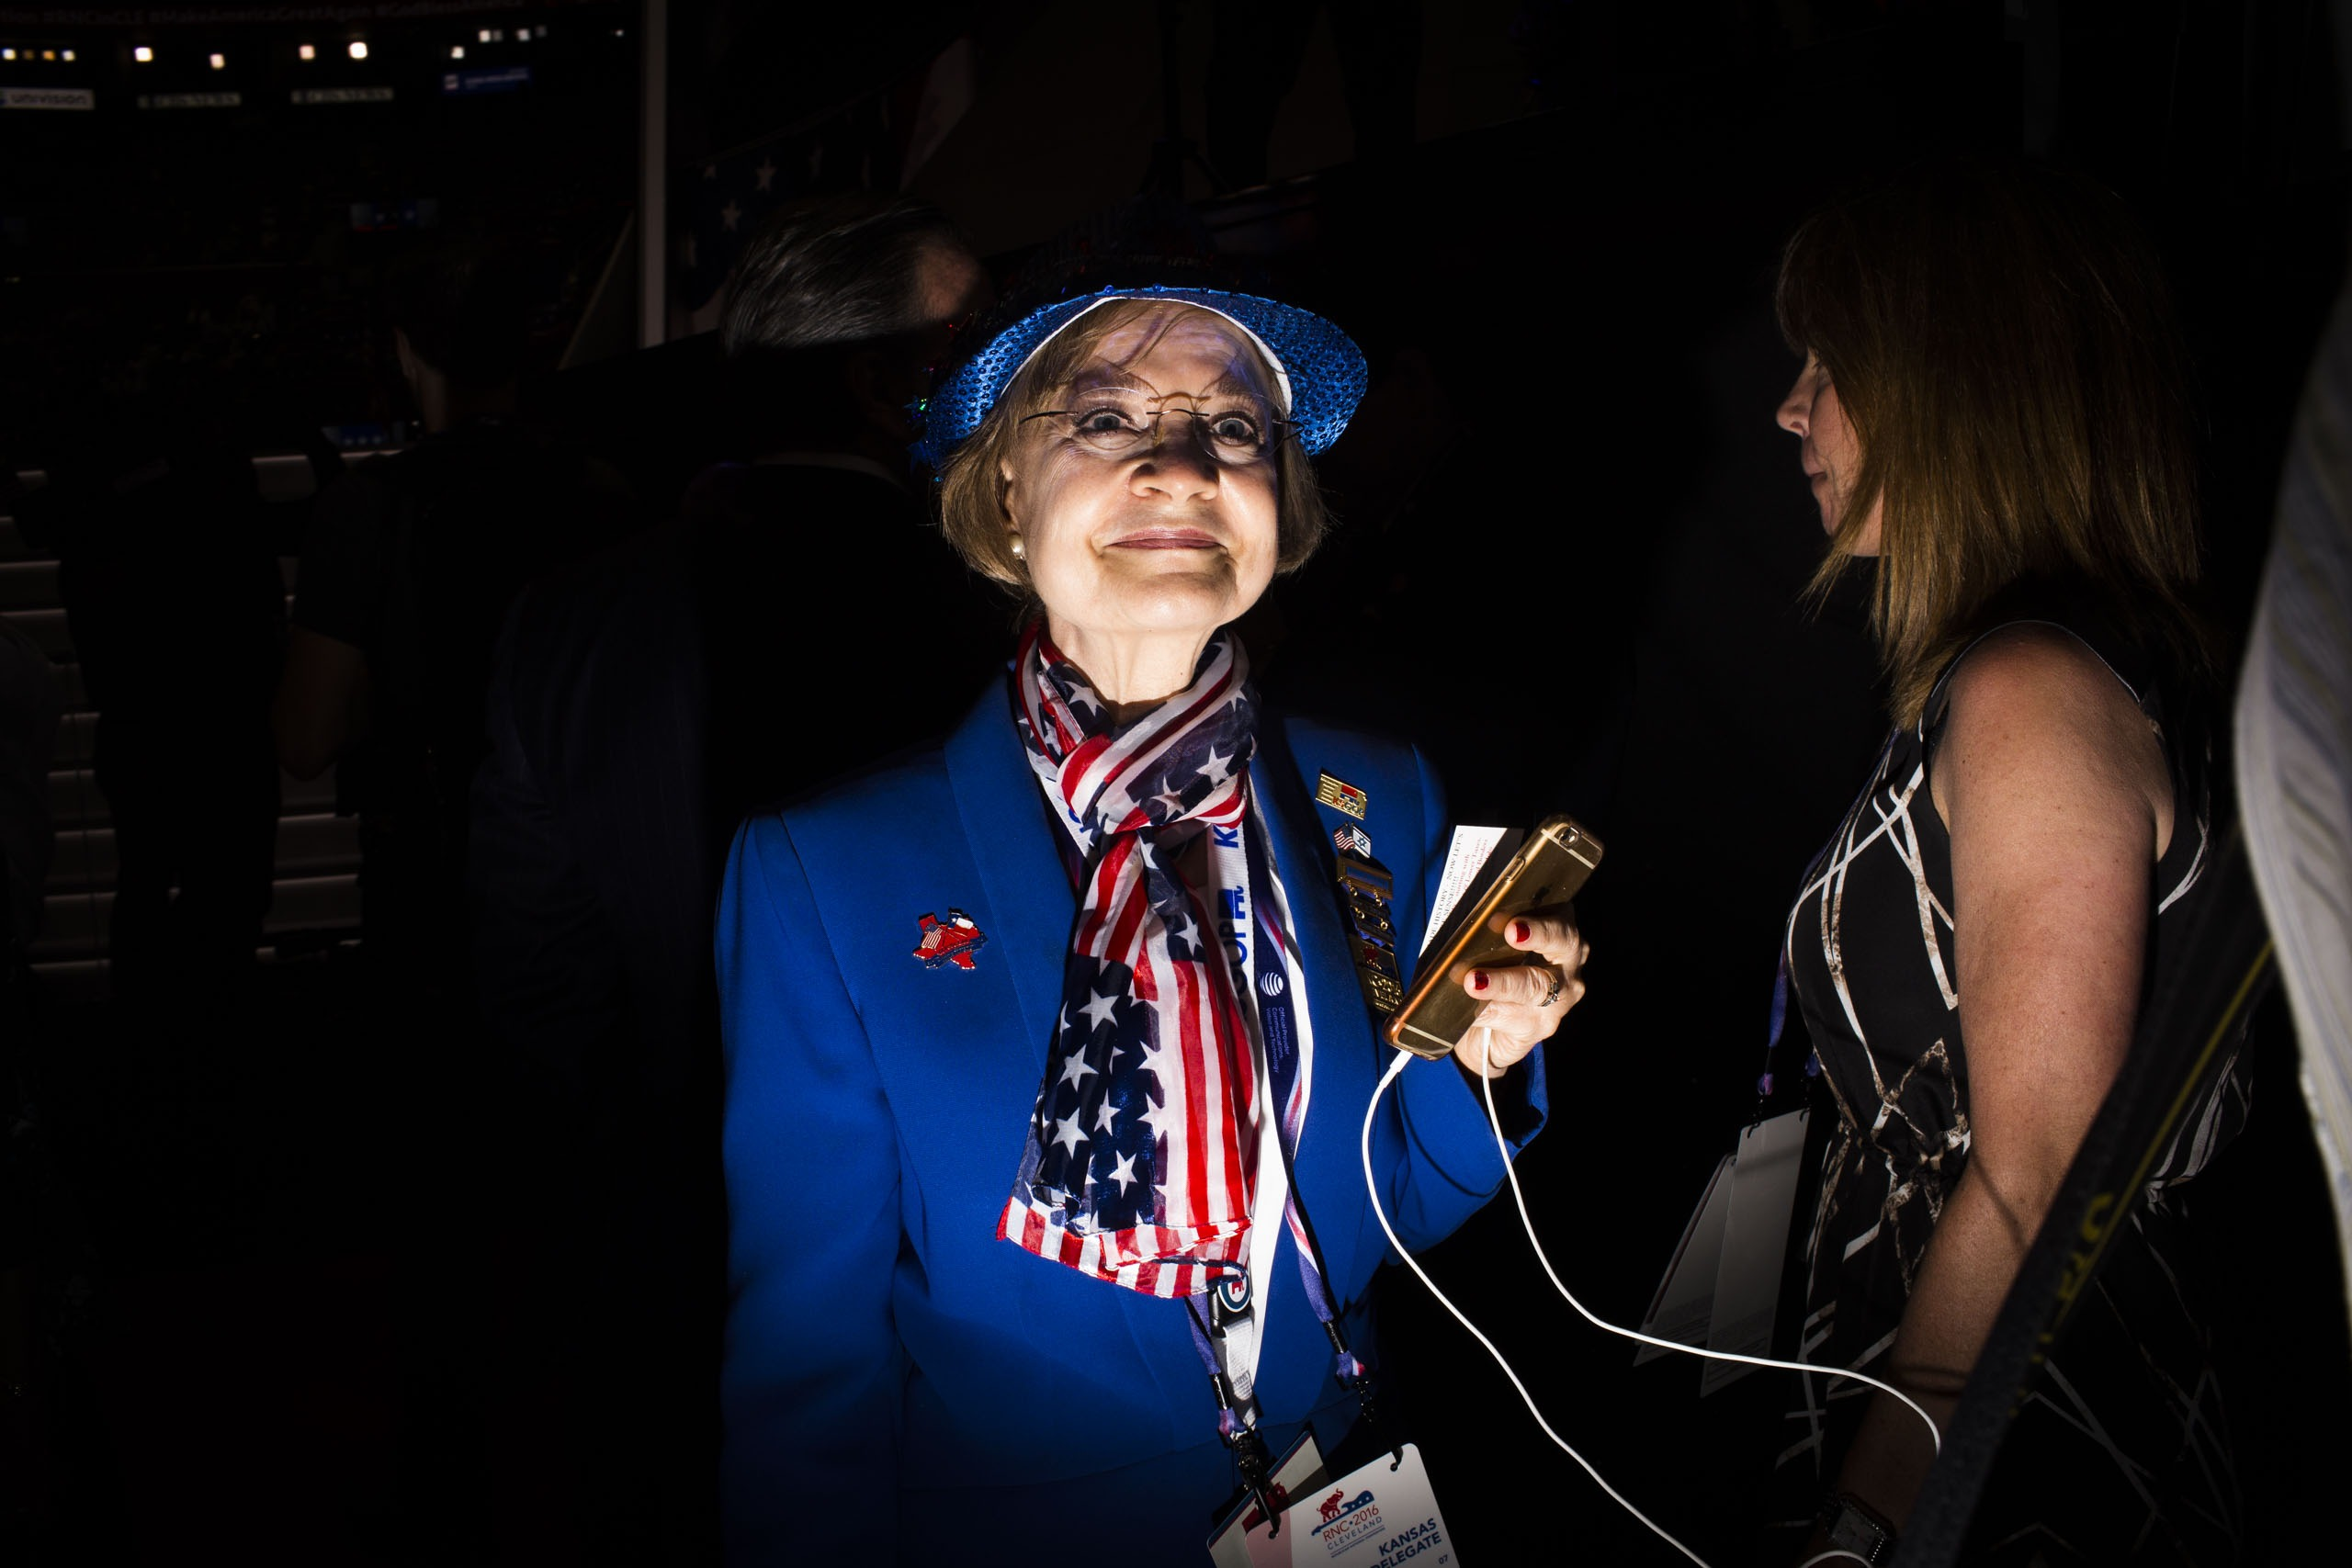 A star-spangled scarf appears on the RNC floor Wednesday, July 20, 2016, in Cleveland.